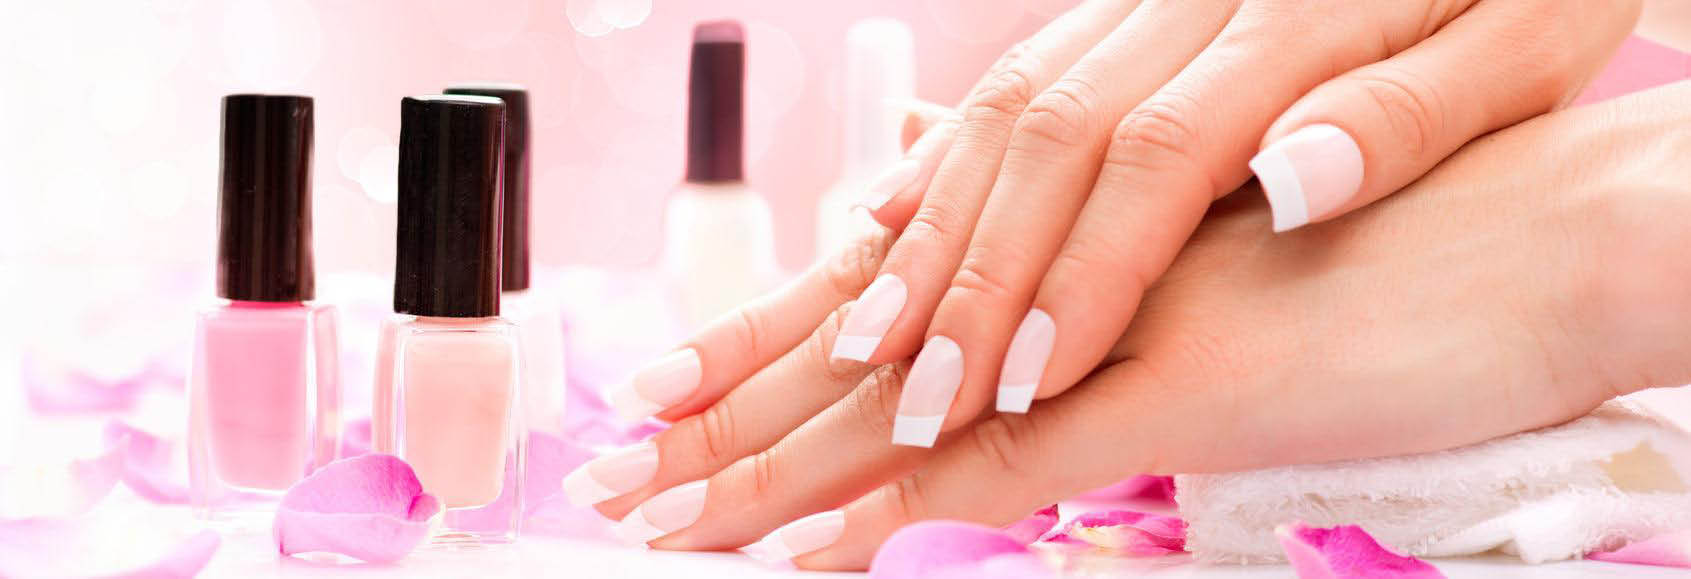 Nail salon discount coupons